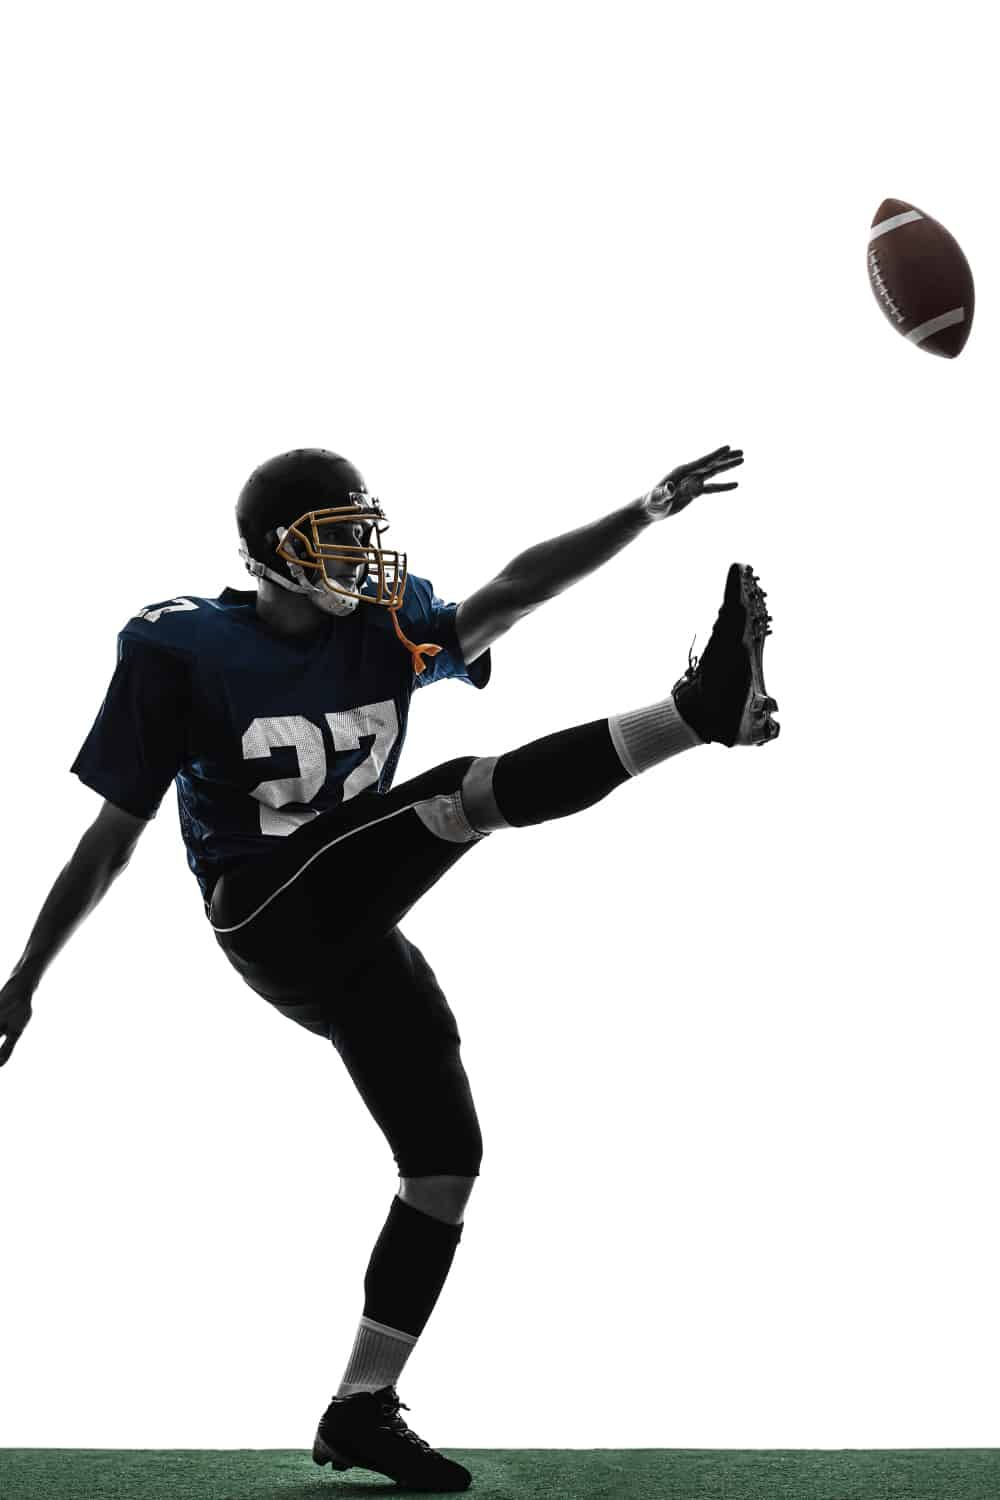 American football player kicking the ball in silhouette